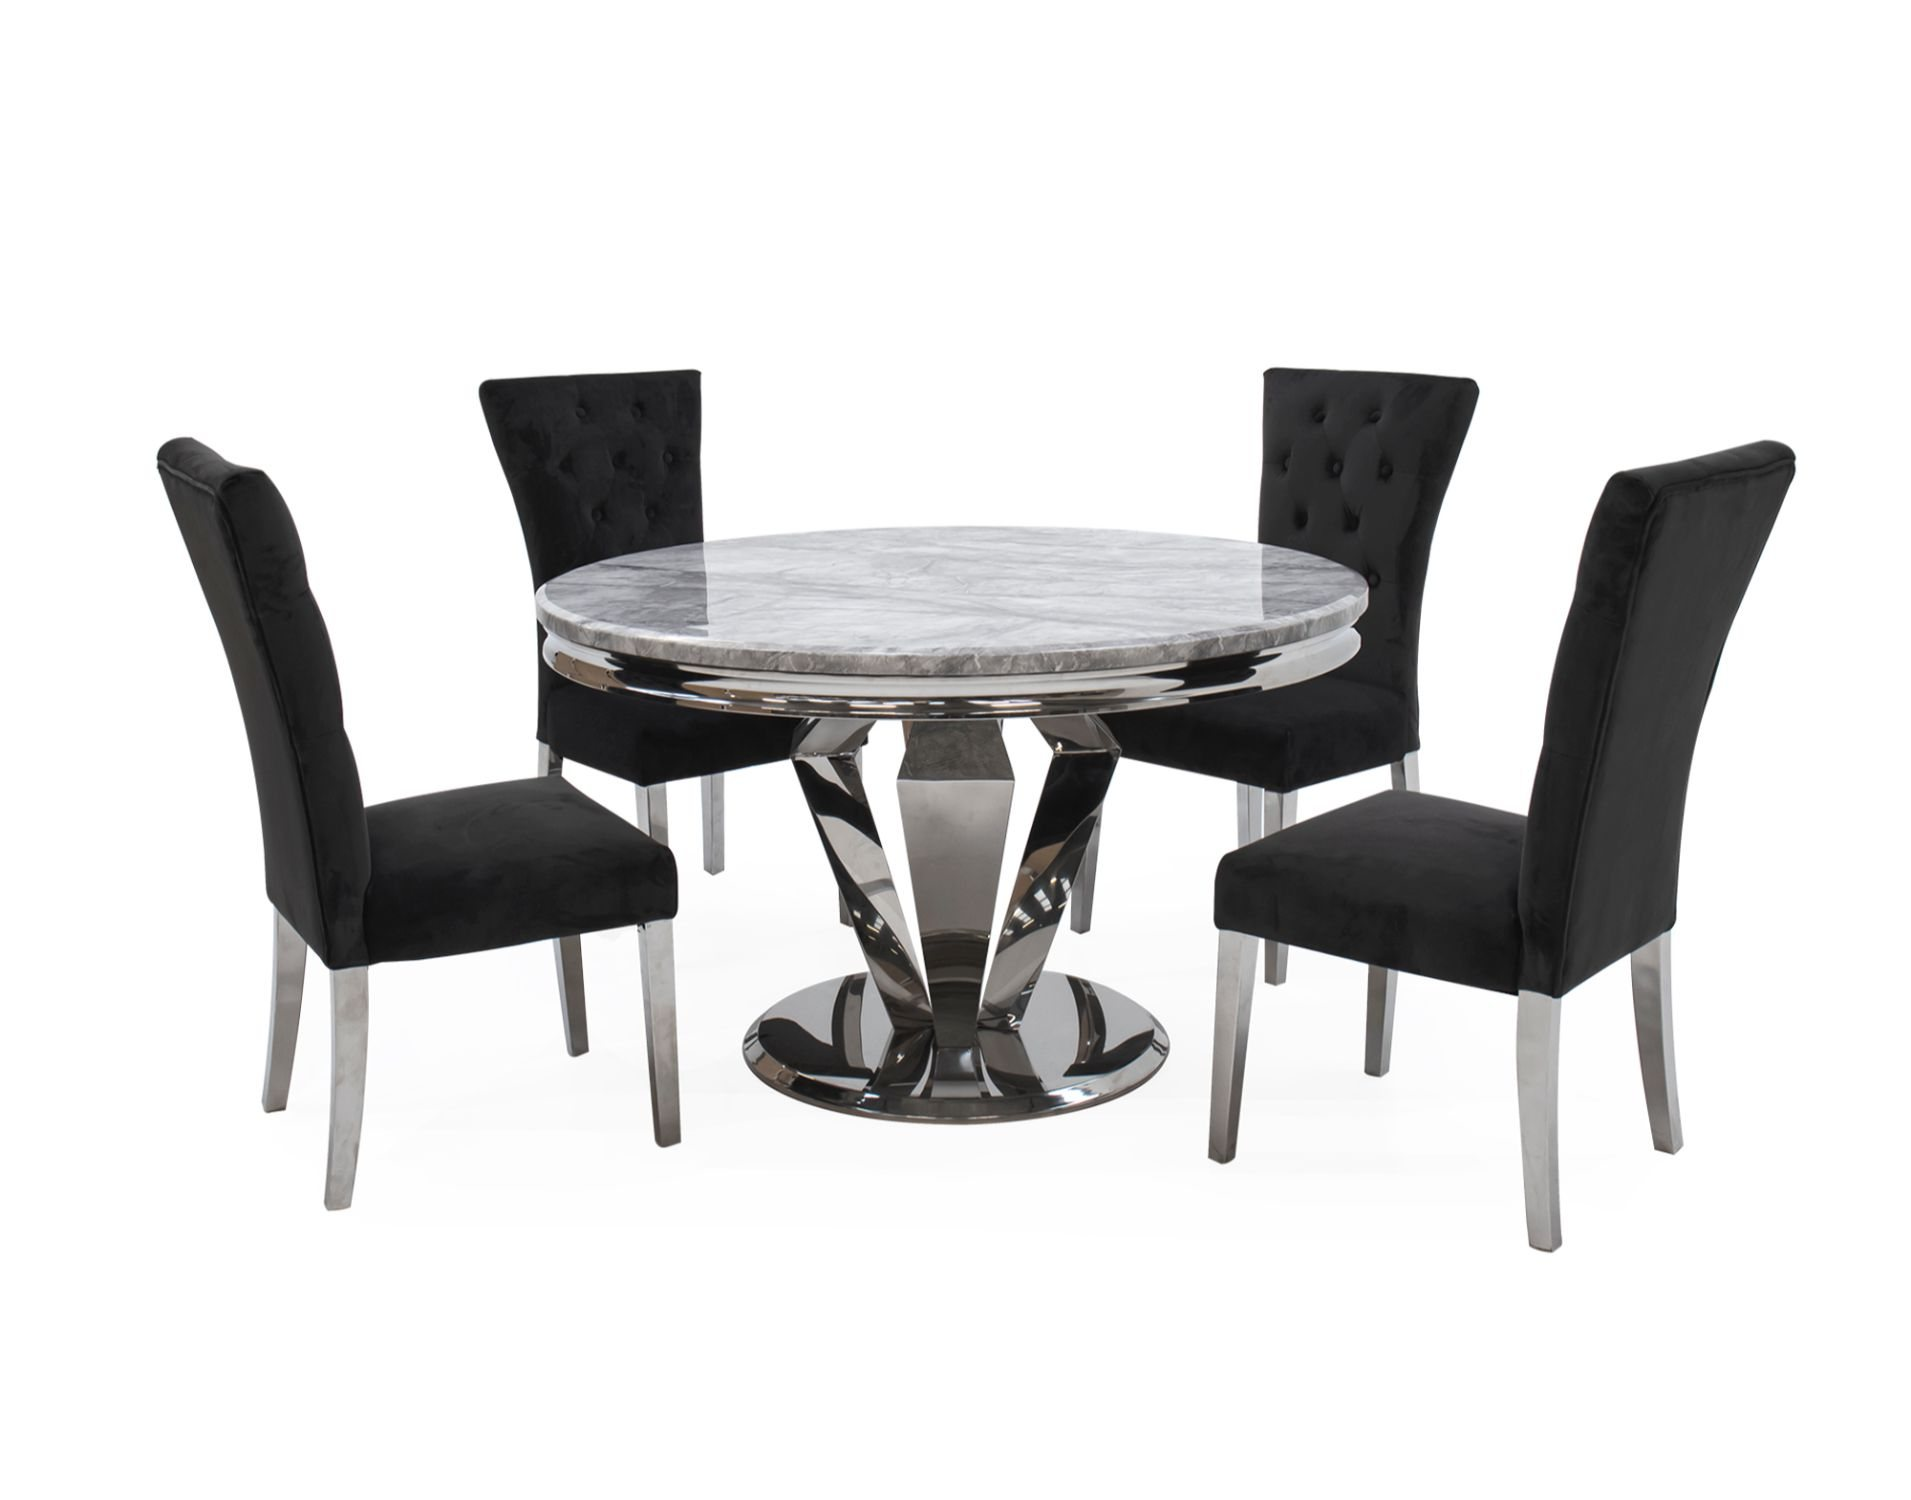 Arturo Compact Round Dining Table Set With Grey Marble Top 4 Pembroke Charcoal Dining Chairs Furniture World